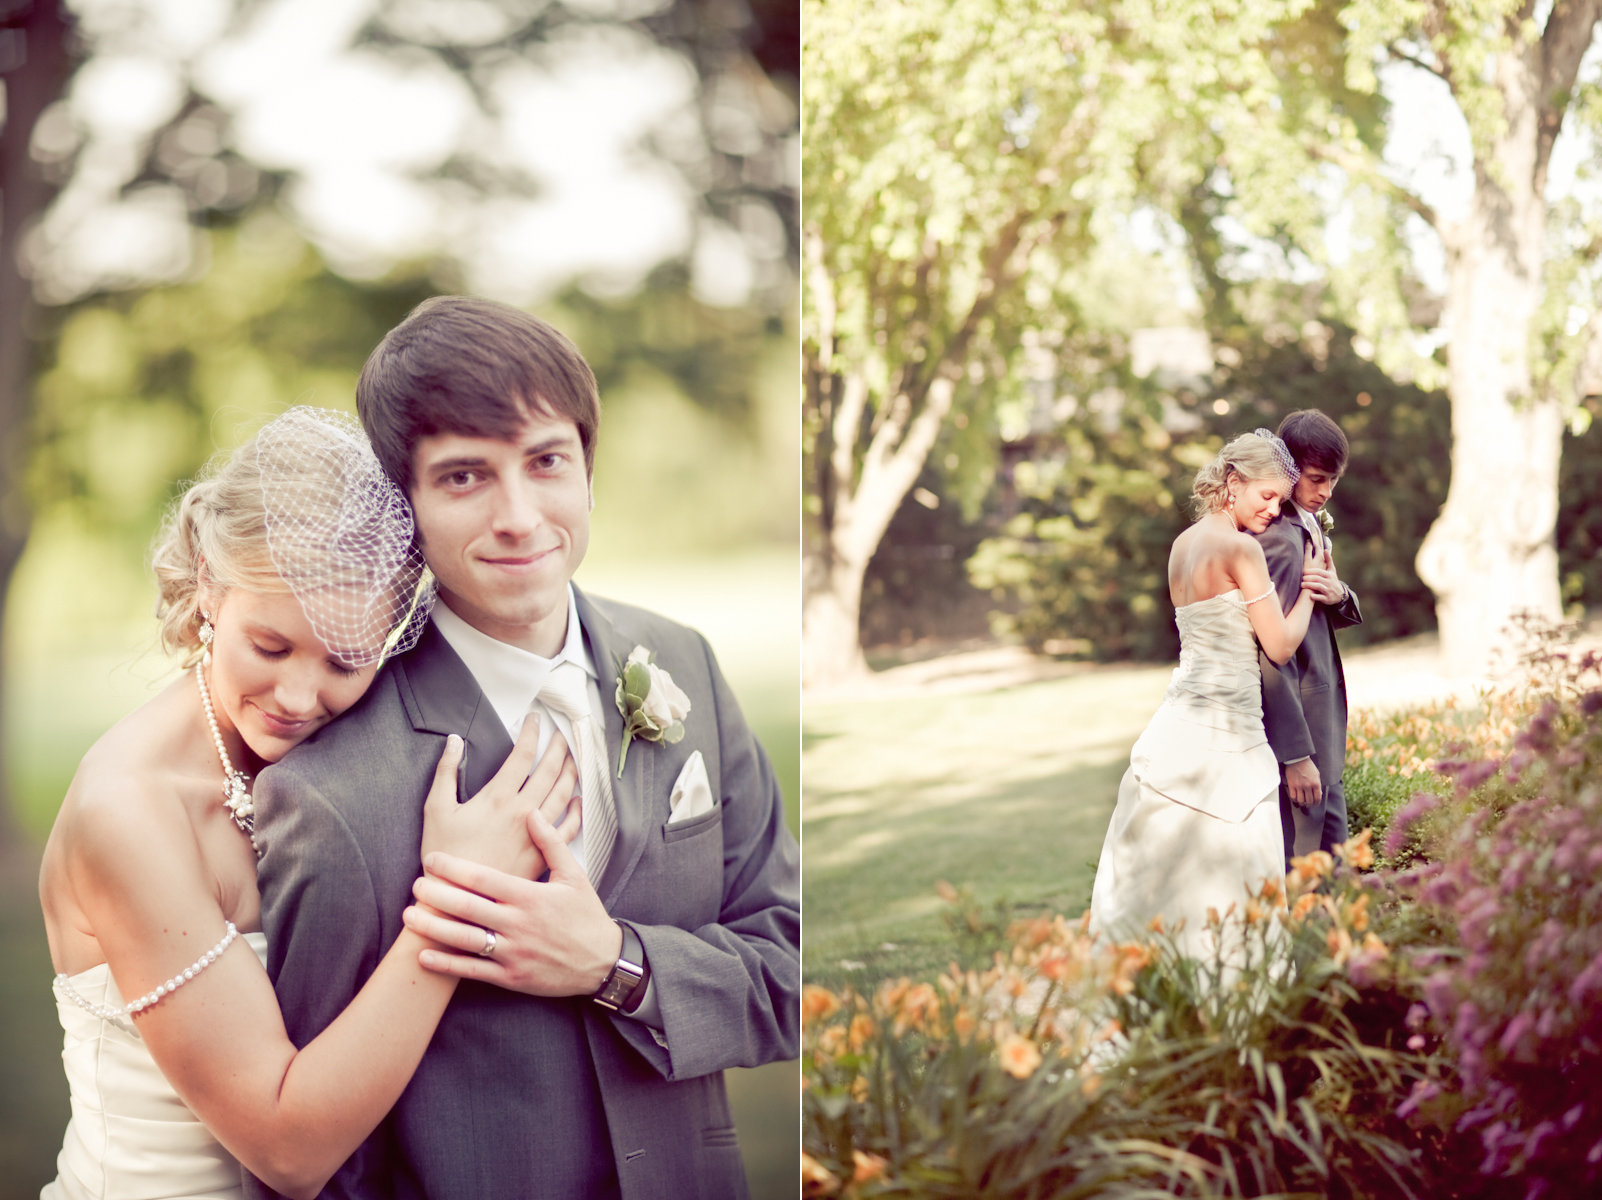 Wedding photography vintage  Vintage wedding photography - All Pictures top